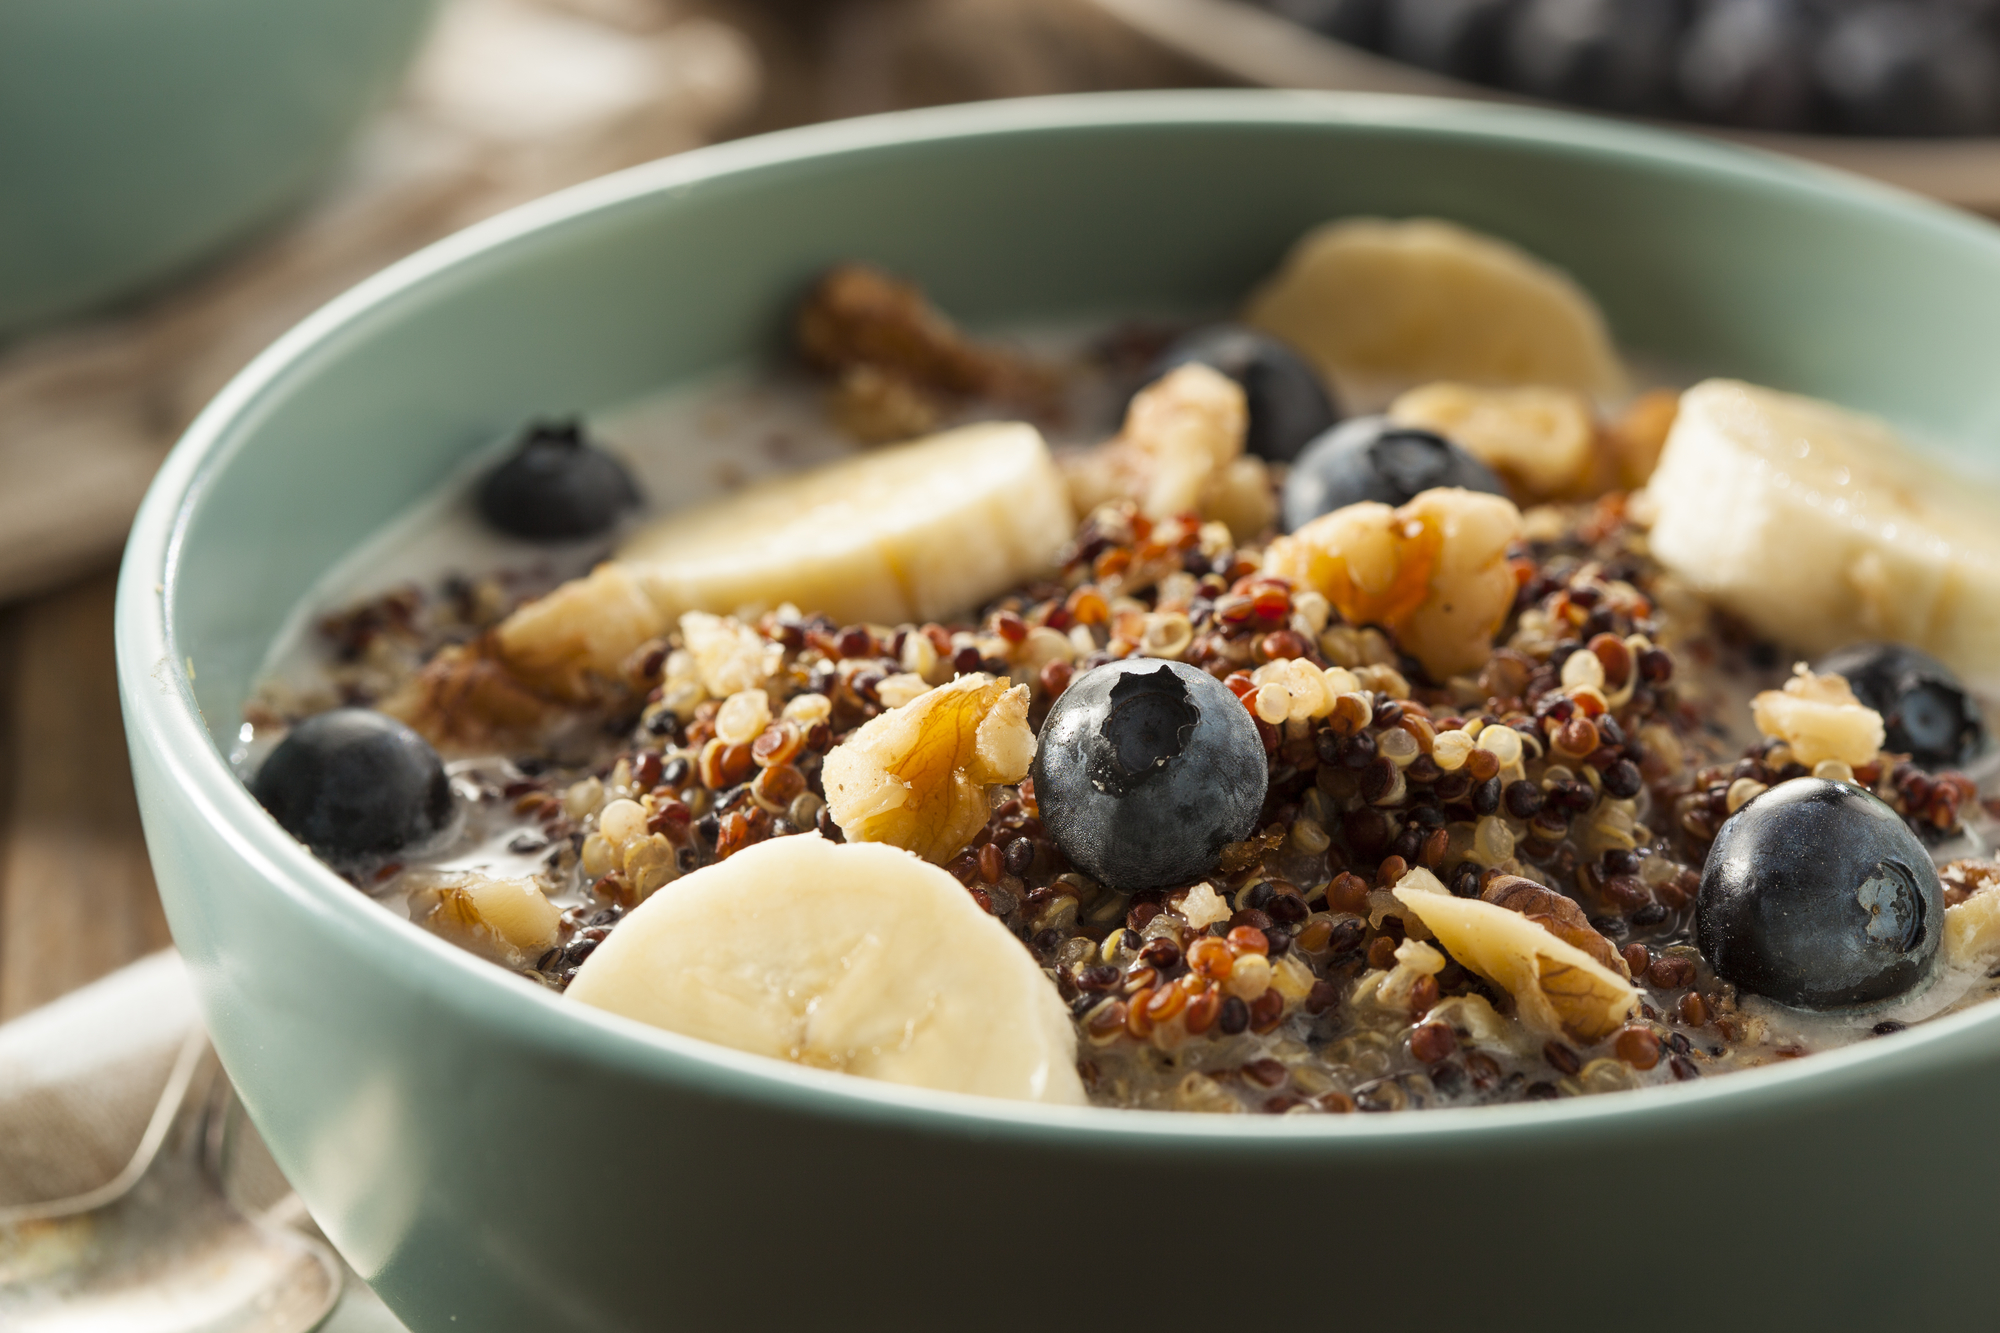 Quinoa Porridge - 12 Steps To A Breakfast Of Champions. Part 2